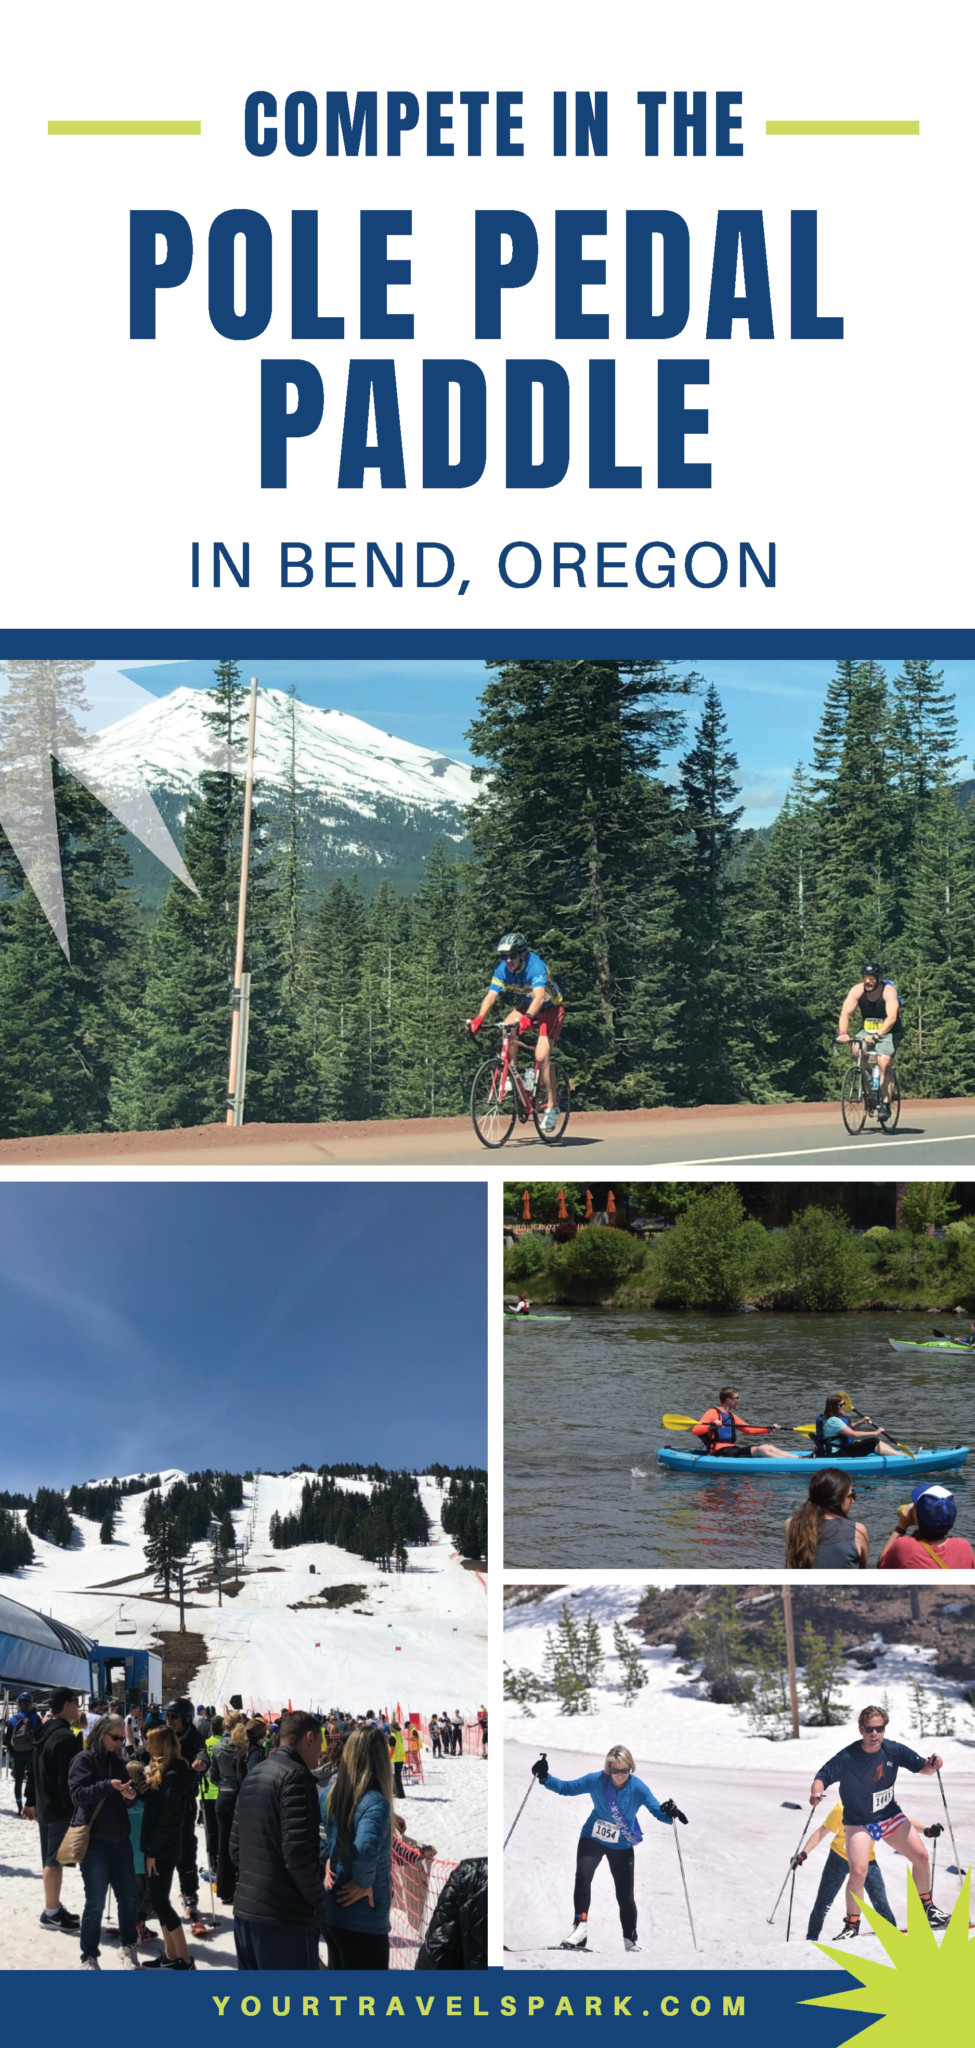 Visiting Bend, Oregon means hiking, camping, skiing, cycling, breweries, and more! Here is how you can compete in the Pole Pedal Paddle in Bend, Oregon. #polepedalpaddle #skiing #downhillskiing #crosscountryskiing #kayaking #biking #bicycling #mountainbiking #bendoregon #bend #oregon #centraloregon #thingstodo #breweries #hiking #camping #skiing #mountbachelor #mtbachelor #southsister #threesisters #trails #outdoors #10barrel #deschutesbrewery #deschutes #running